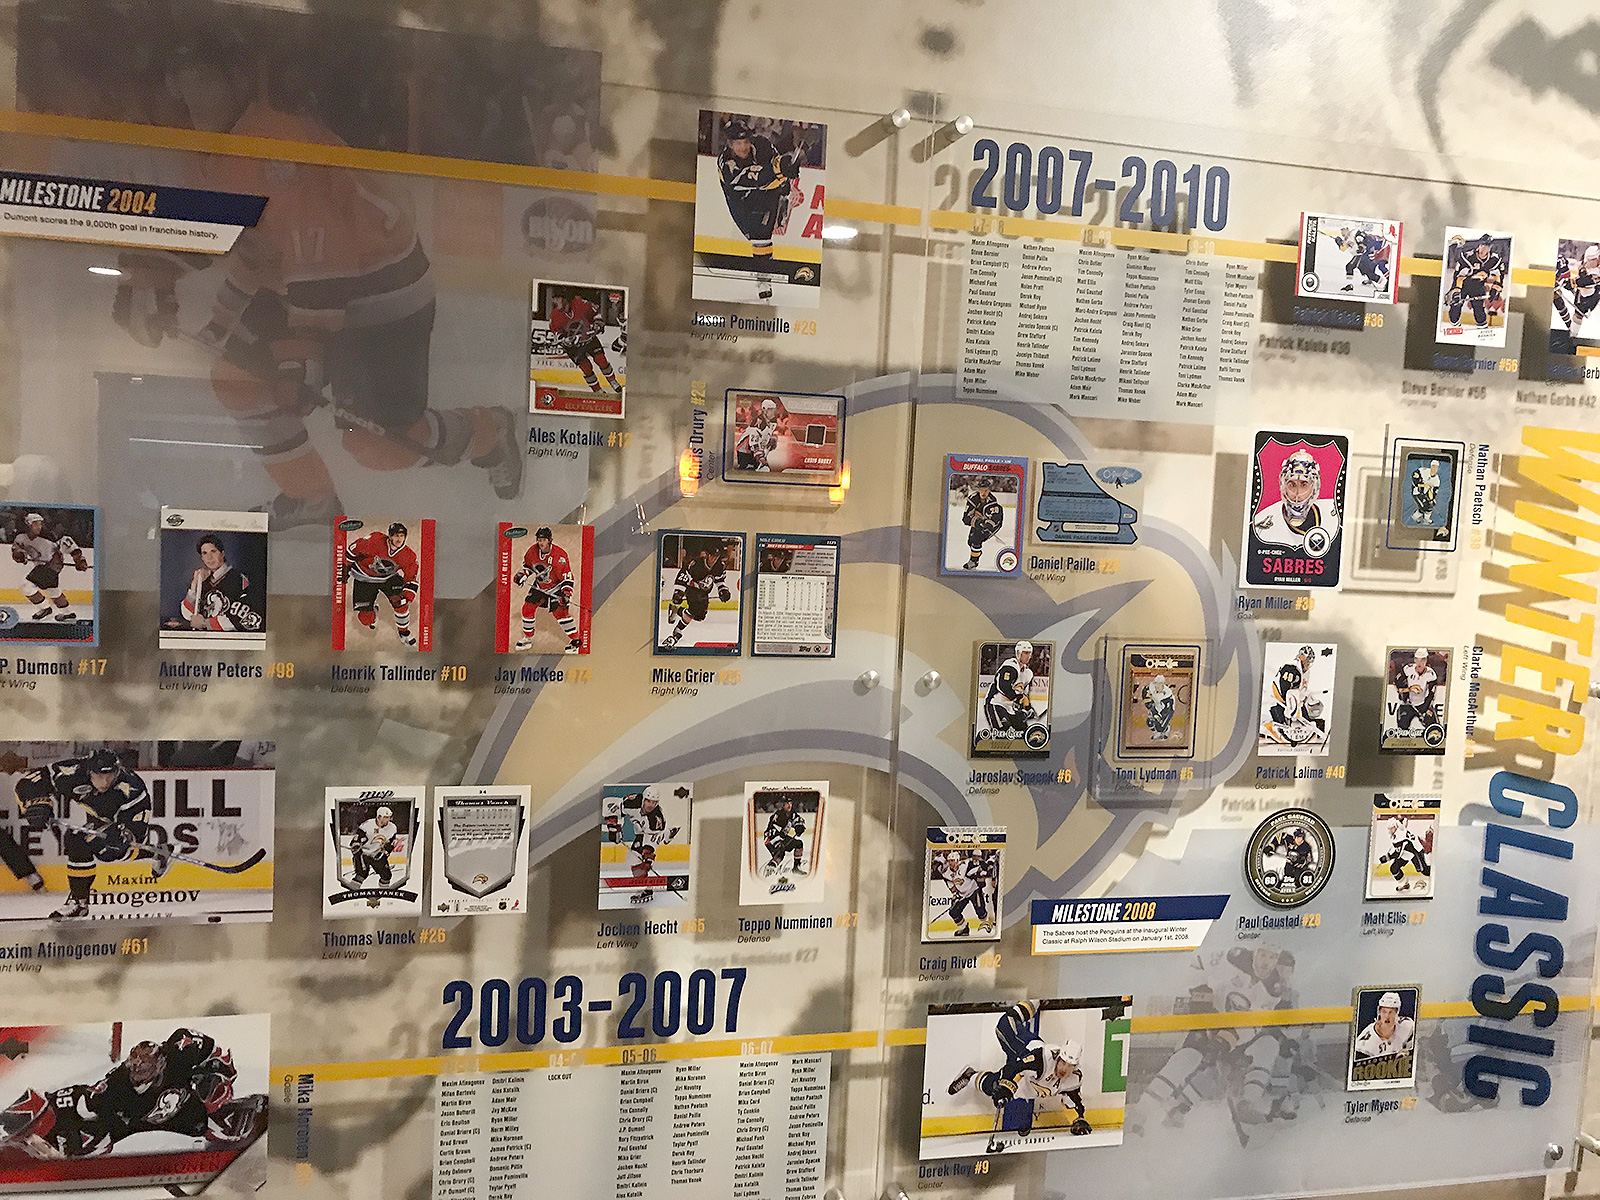 Buffalo Sabres, alumni, #alumniRoomProject, exhibit design, interior design, informational graphics, history, hockey, graphics, hockey cards, wall murals, otherWisz Creative, acrylic panels, rosters, hockey players, buffalo, NY